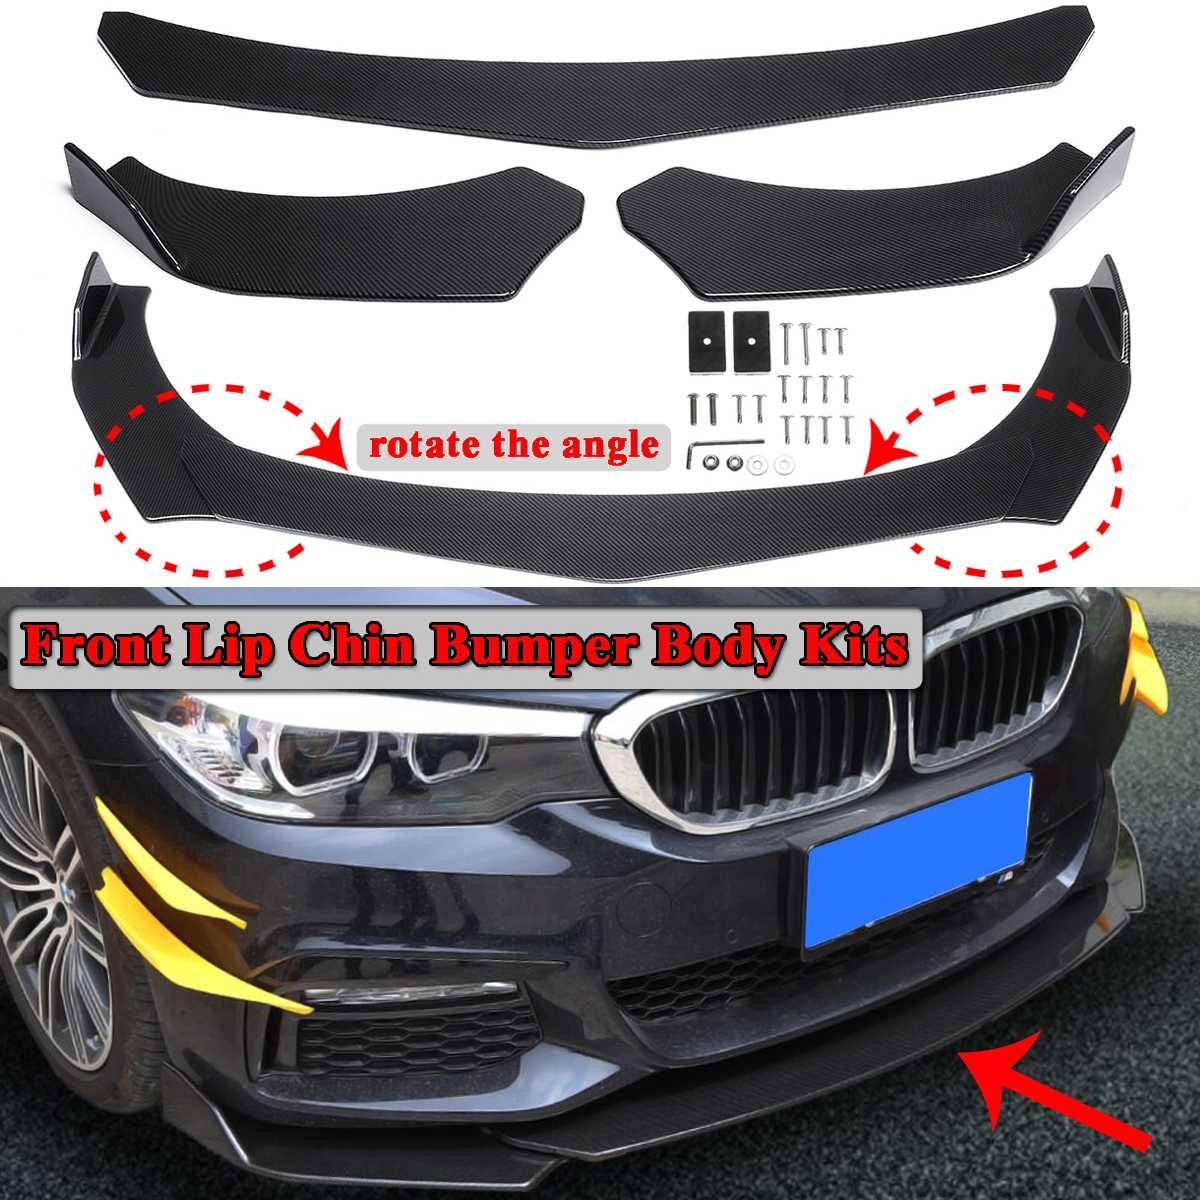 3pcs Carbon Fiber Look Universal Car Front <font><b>Bumper</b></font> Lip <font><b>Bumper</b></font> Spoiler Lip Body Kits For <font><b>BMW</b></font> <font><b>F10</b></font> F30 F32 F36 F80 M3 F82 M4 G30 image